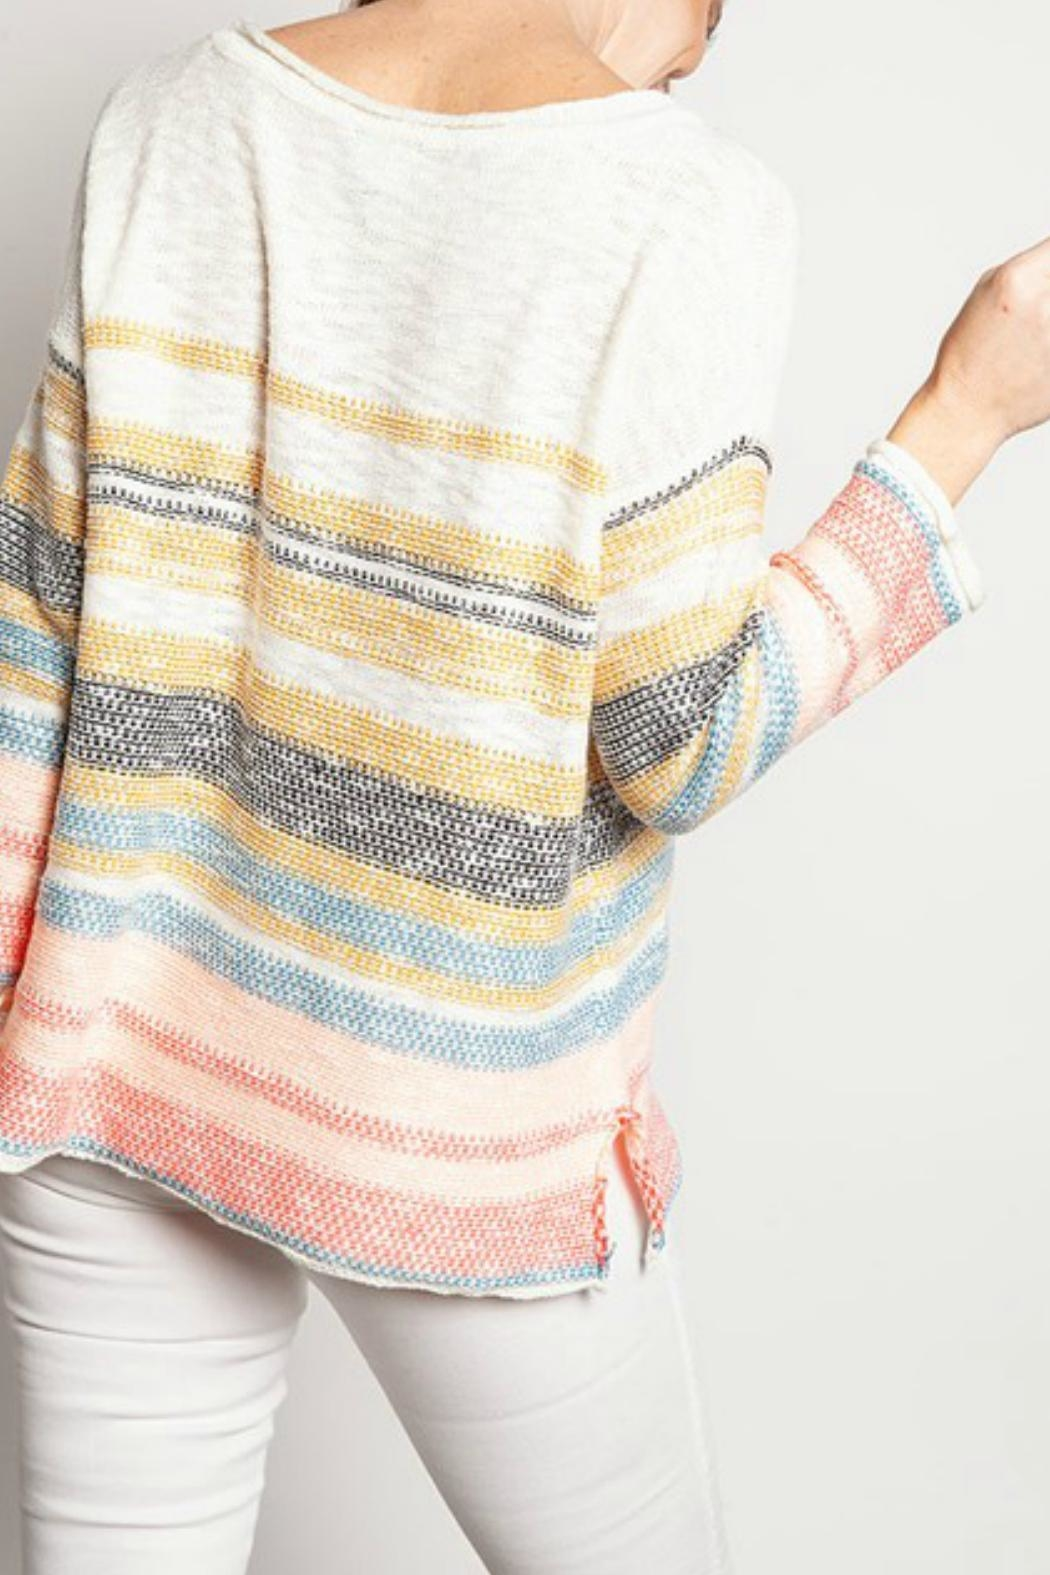 ALB Anchorage Beachy Pastel Sweater - Front Full Image